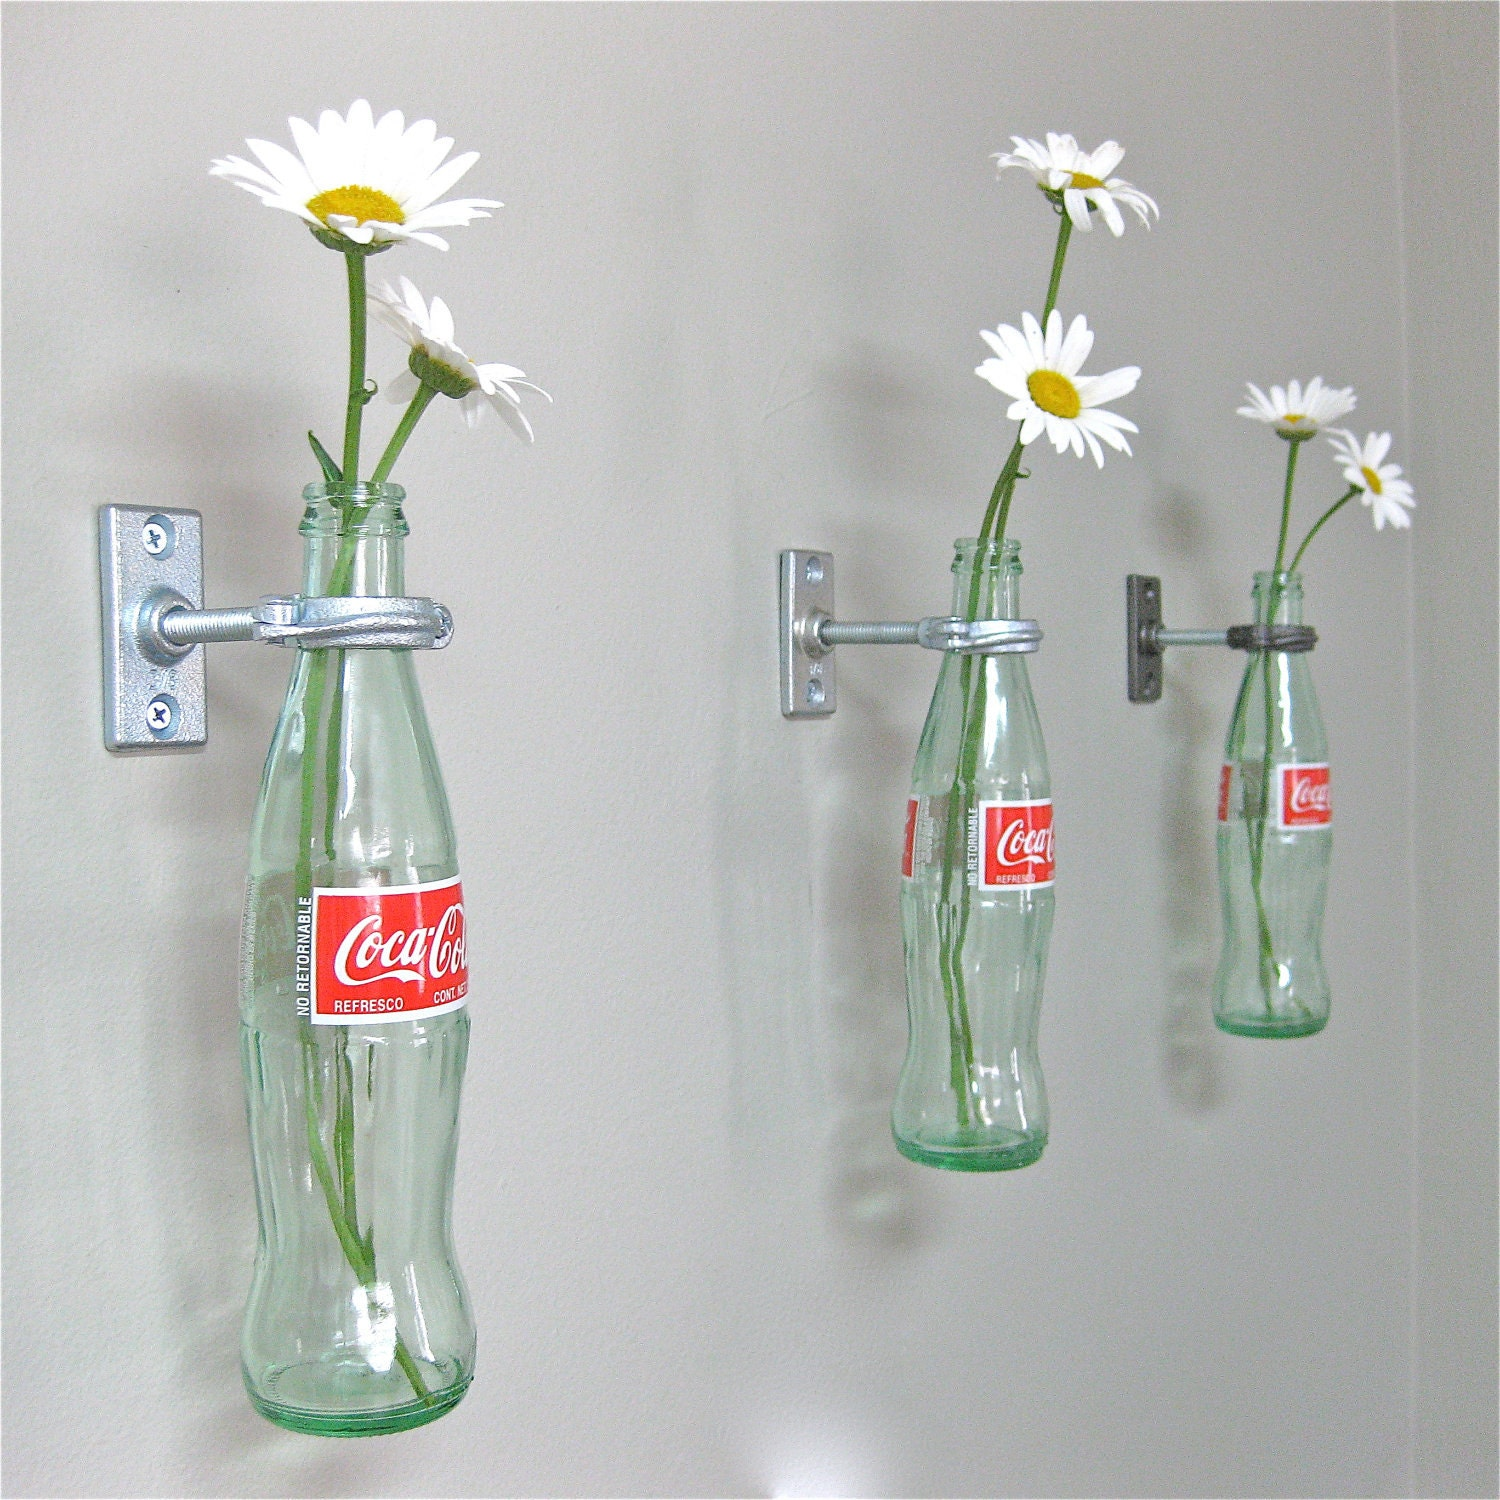 3 Coca Cola Bottle Hanging Flower Vases Coke Decor Gift